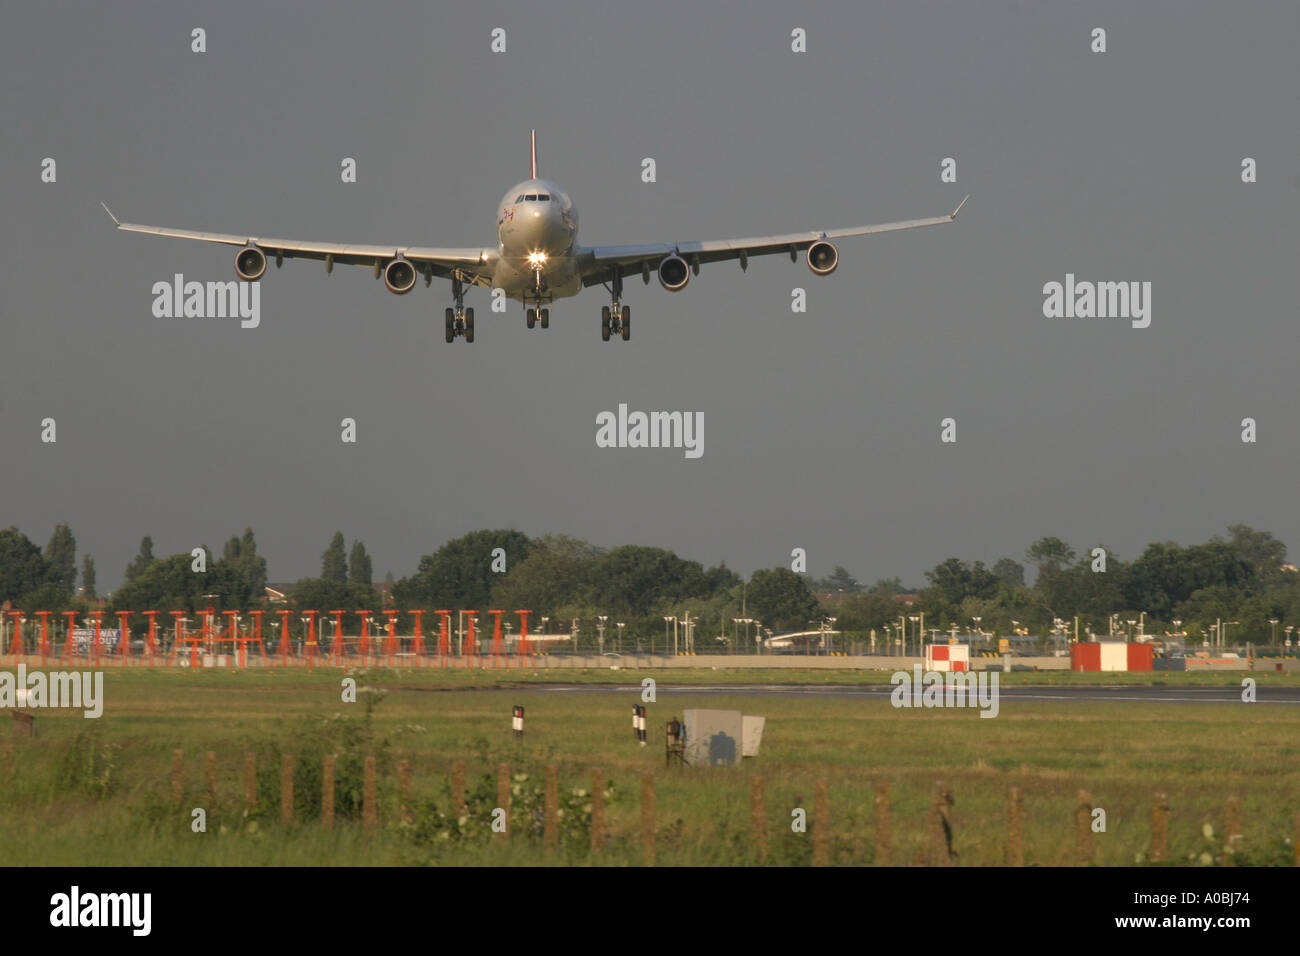 Airbus A340 coming to land in strong crosswind London Heathrow Airport England UK - Stock Image